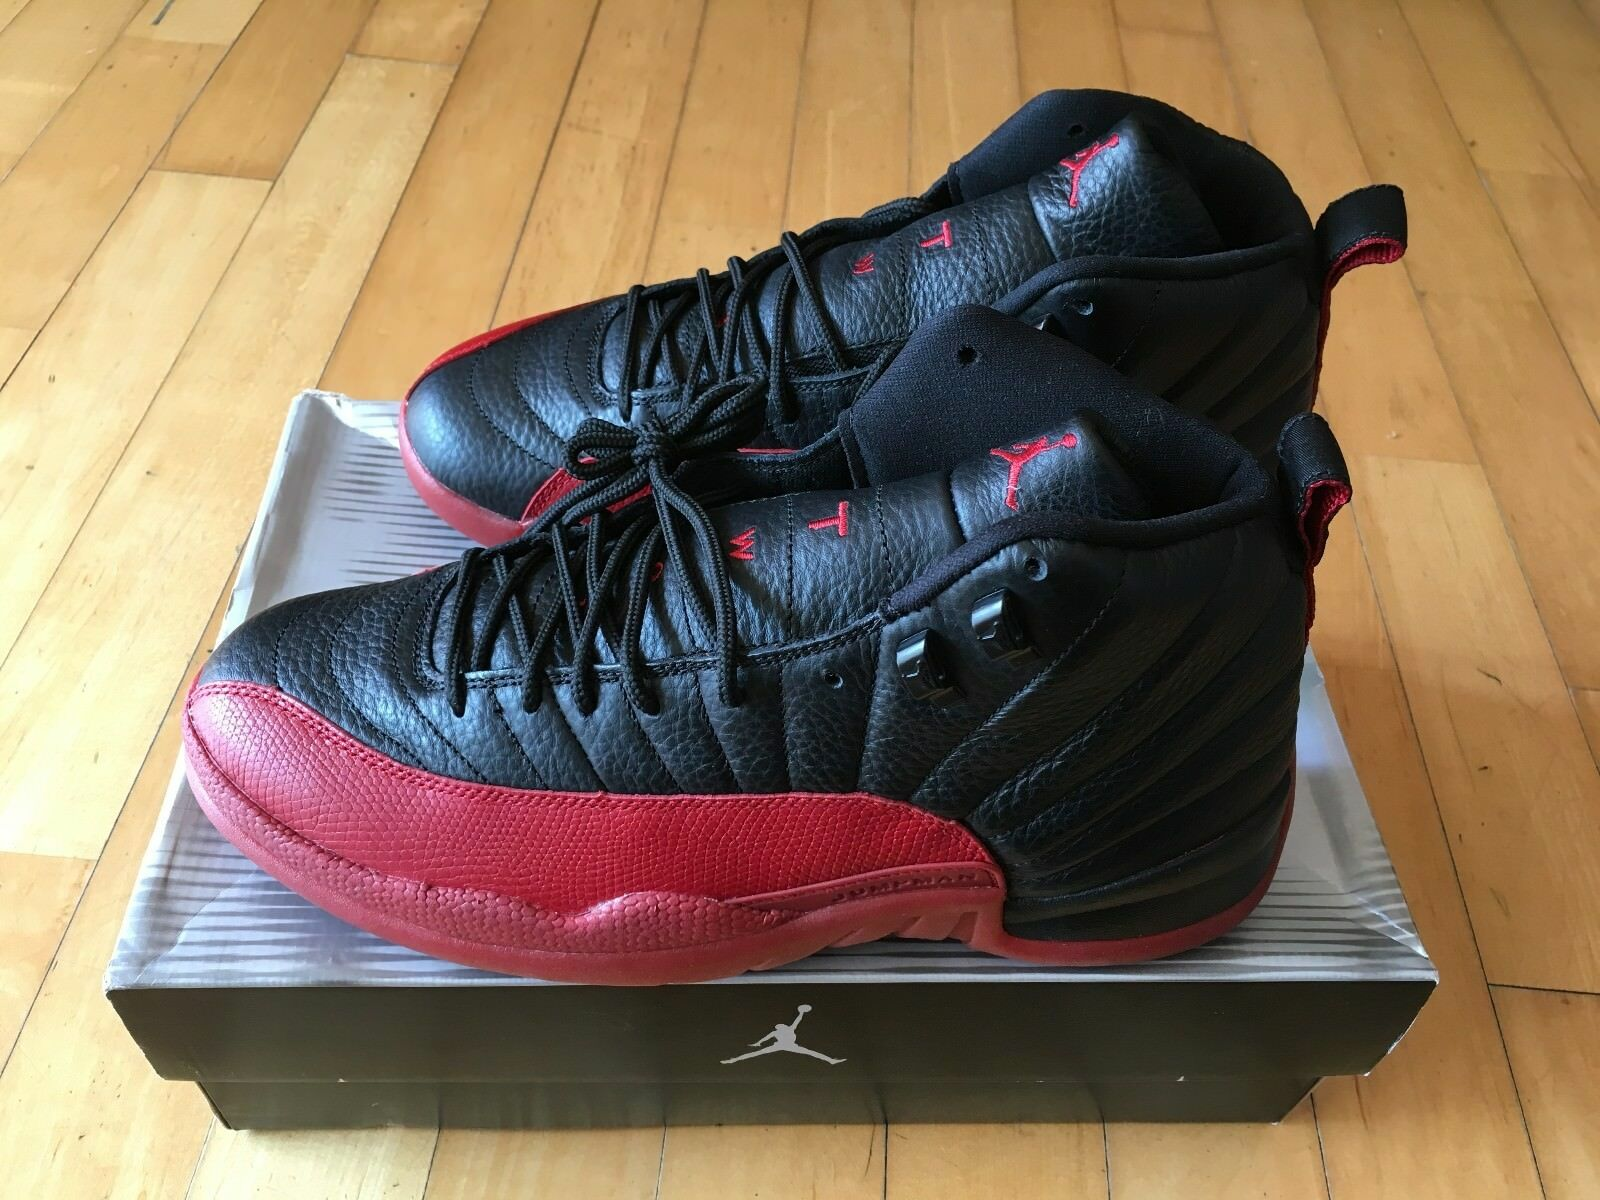 a5dc0126fb Air Jordan 12 Retro - Size 11 [DEADSTOCK] US npvihw7629-Athletic ...